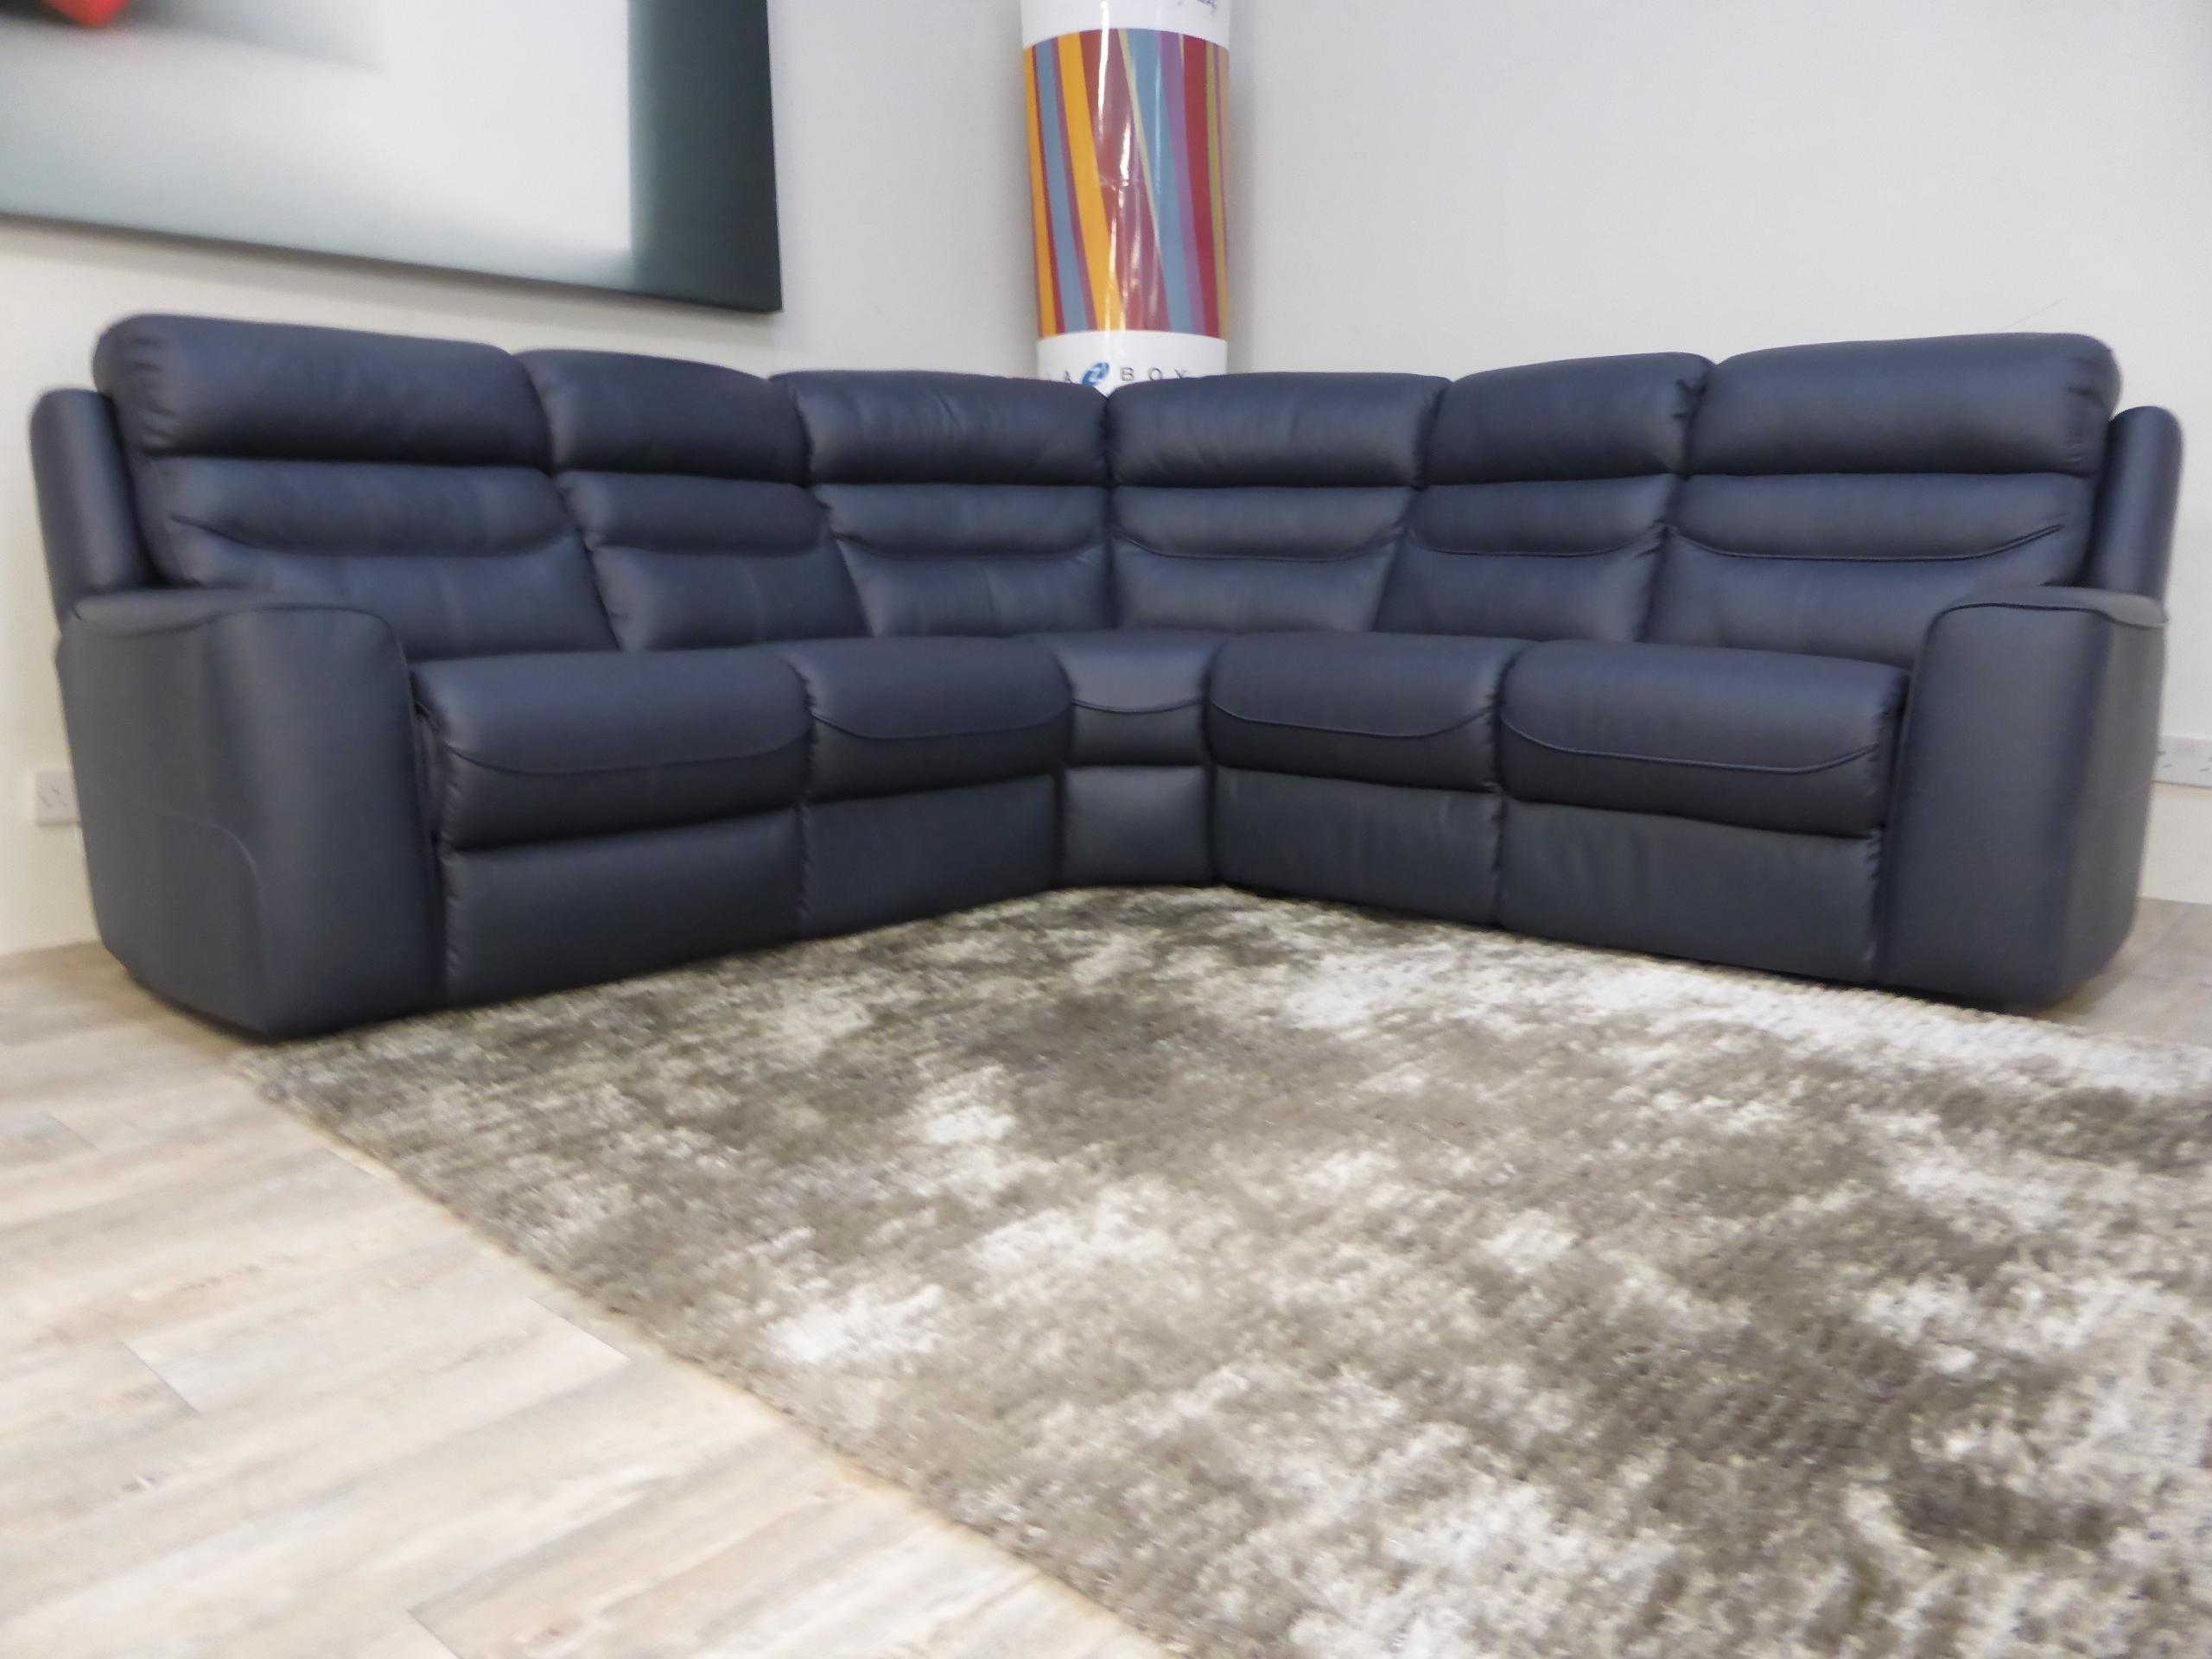 Lazyboy Sofa And Bed Gallery | Furnimax Brands Outlet With Lazy Boy Manhattan Sofas (Image 15 of 21)